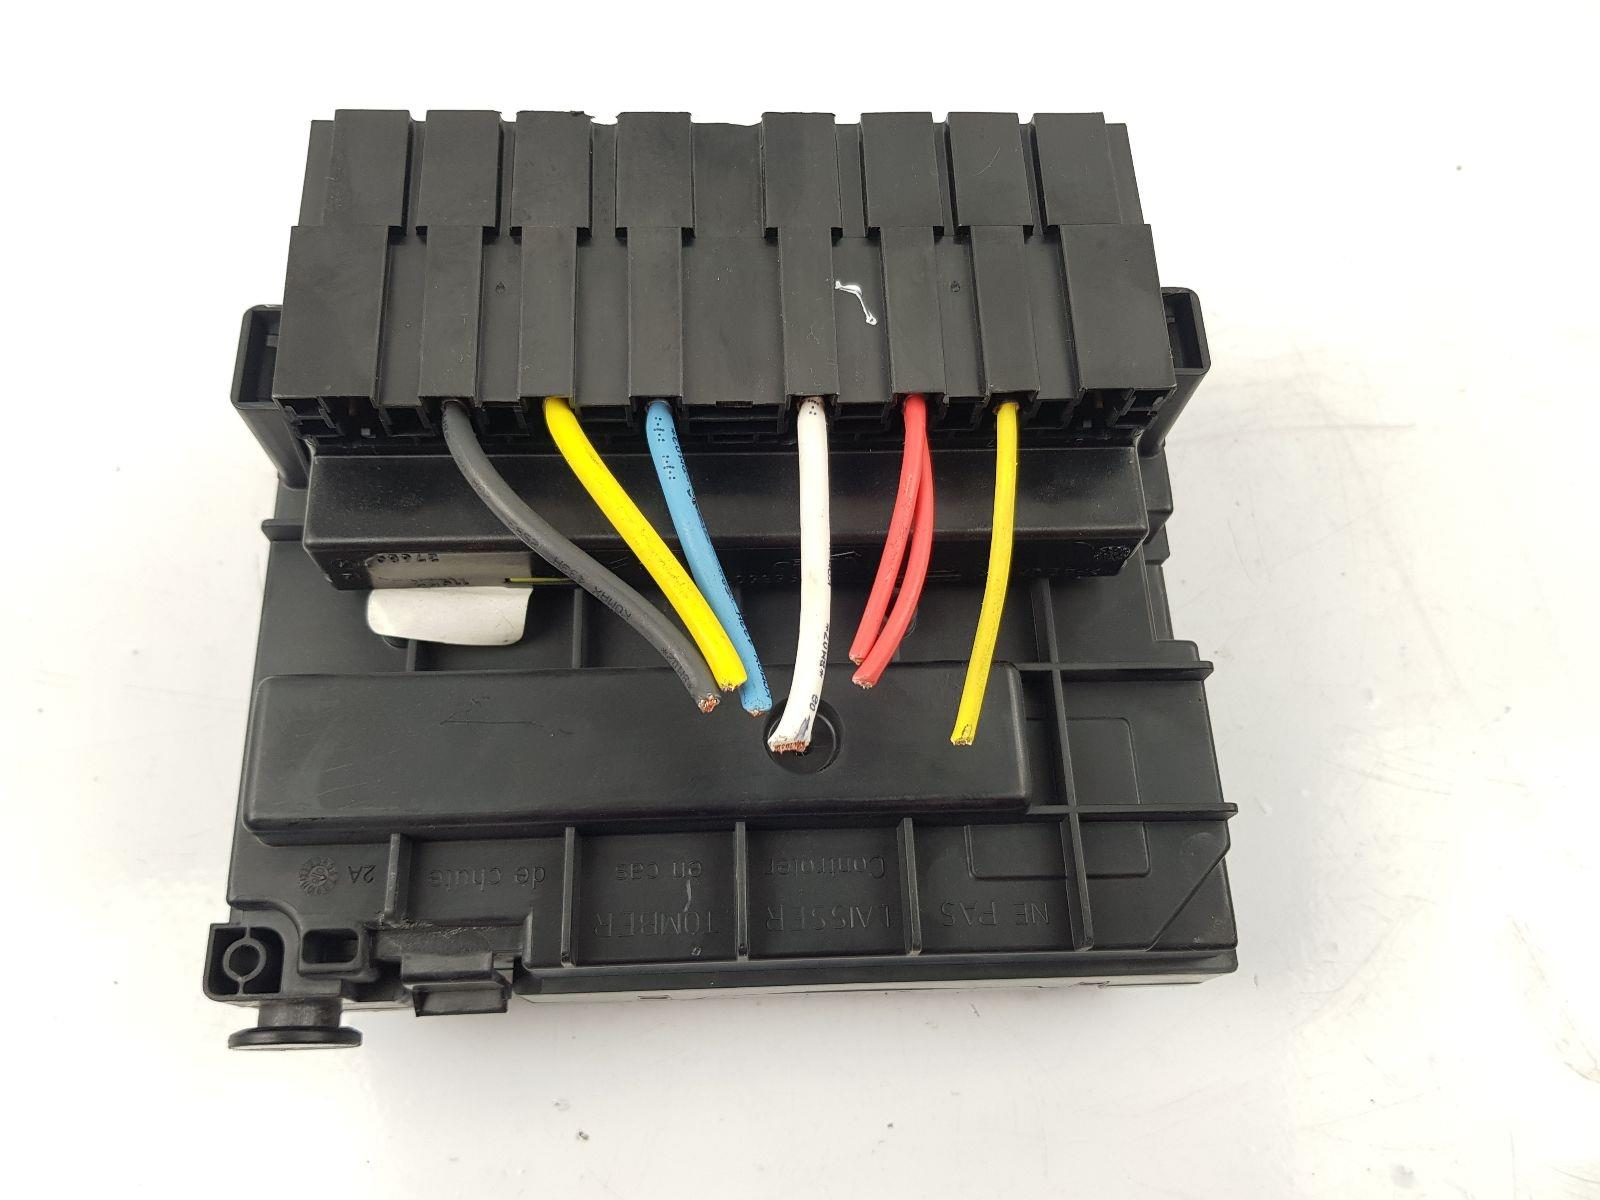 Peugeot 308 2008 To 2010 Fuse Box Diesel Manual For Sale From Transformer Mk1 T7 9664706280